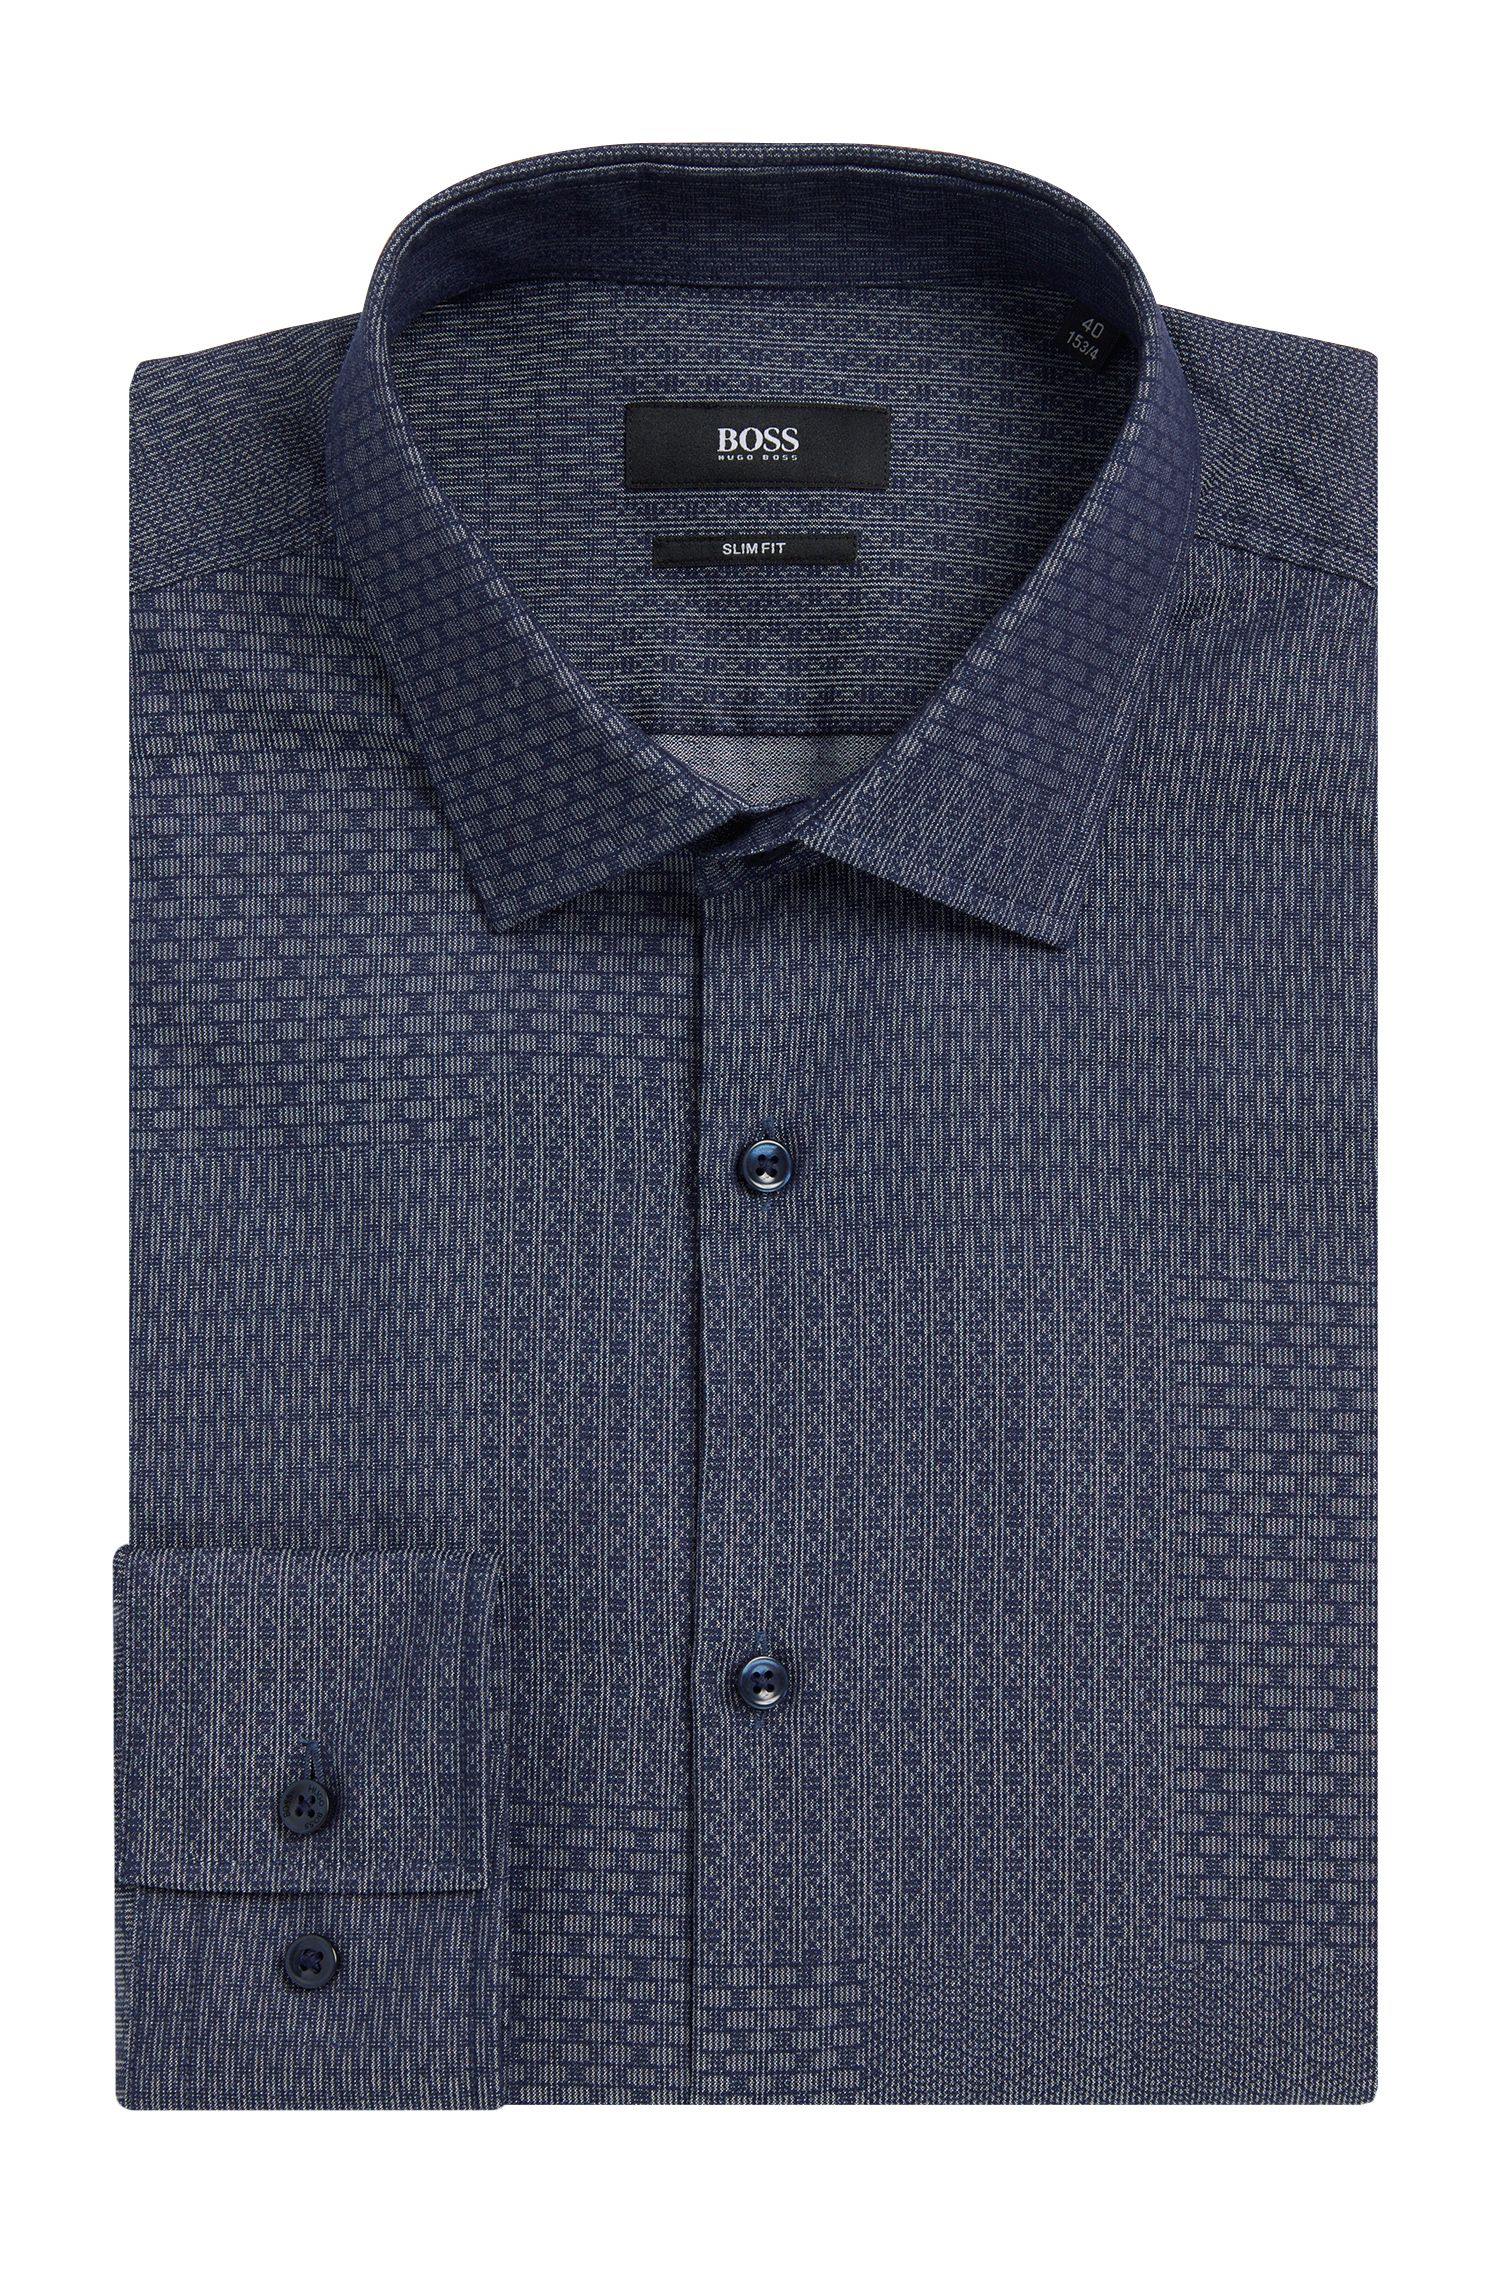 'Jenno' | Slim Fit, Cotton Patchwork Dress Shirt